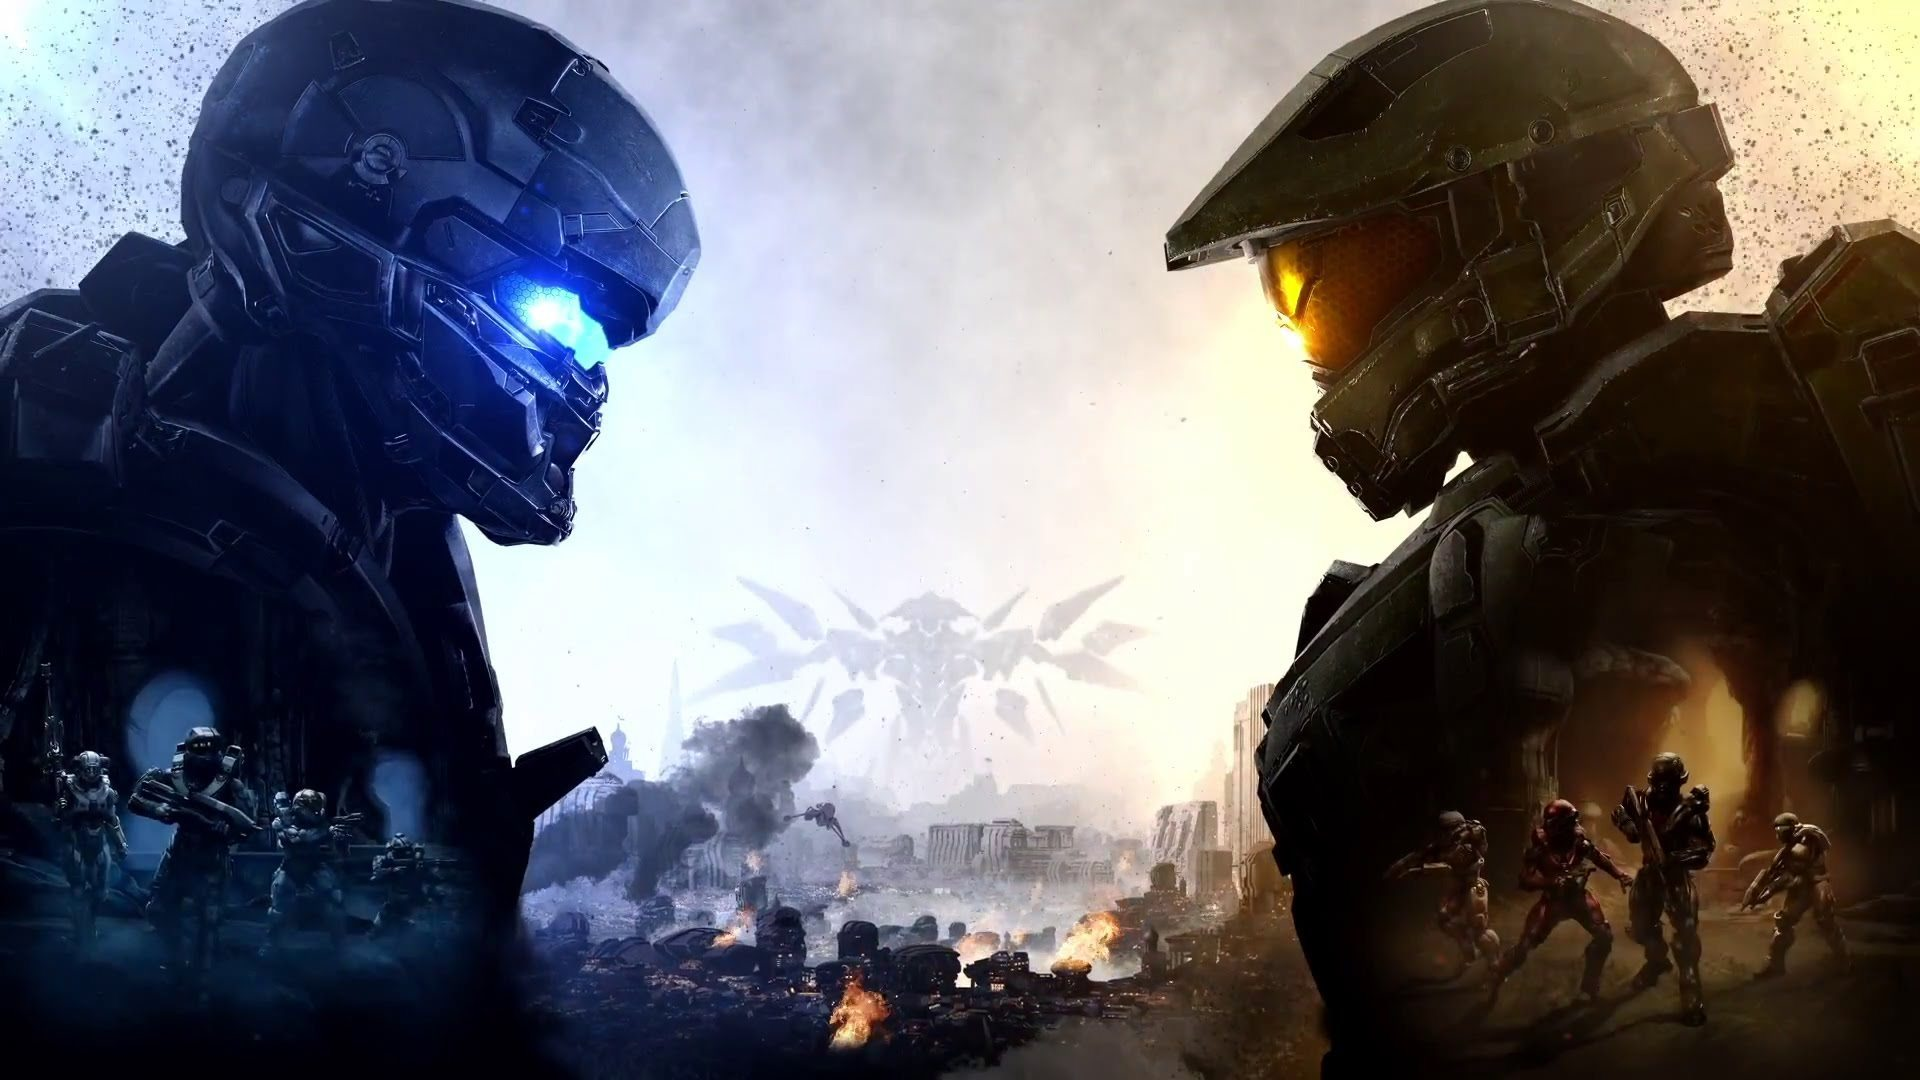 Halo 6 Will Focus on Master Chief, Won't Feature New Playable Characters